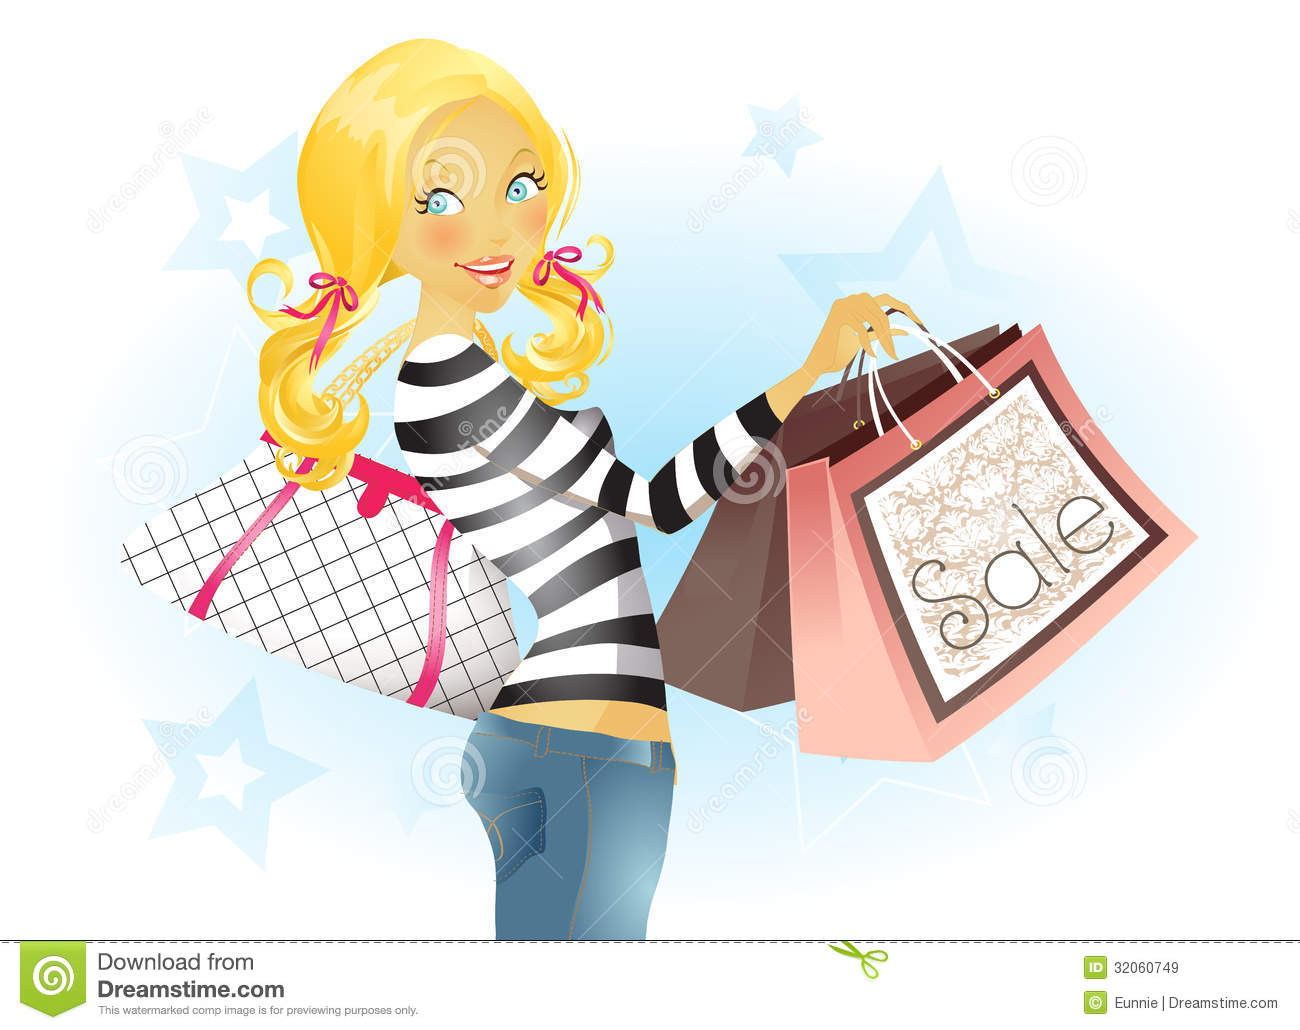 Royalty Free Stock Images  Shopping Spree  Image  32060749